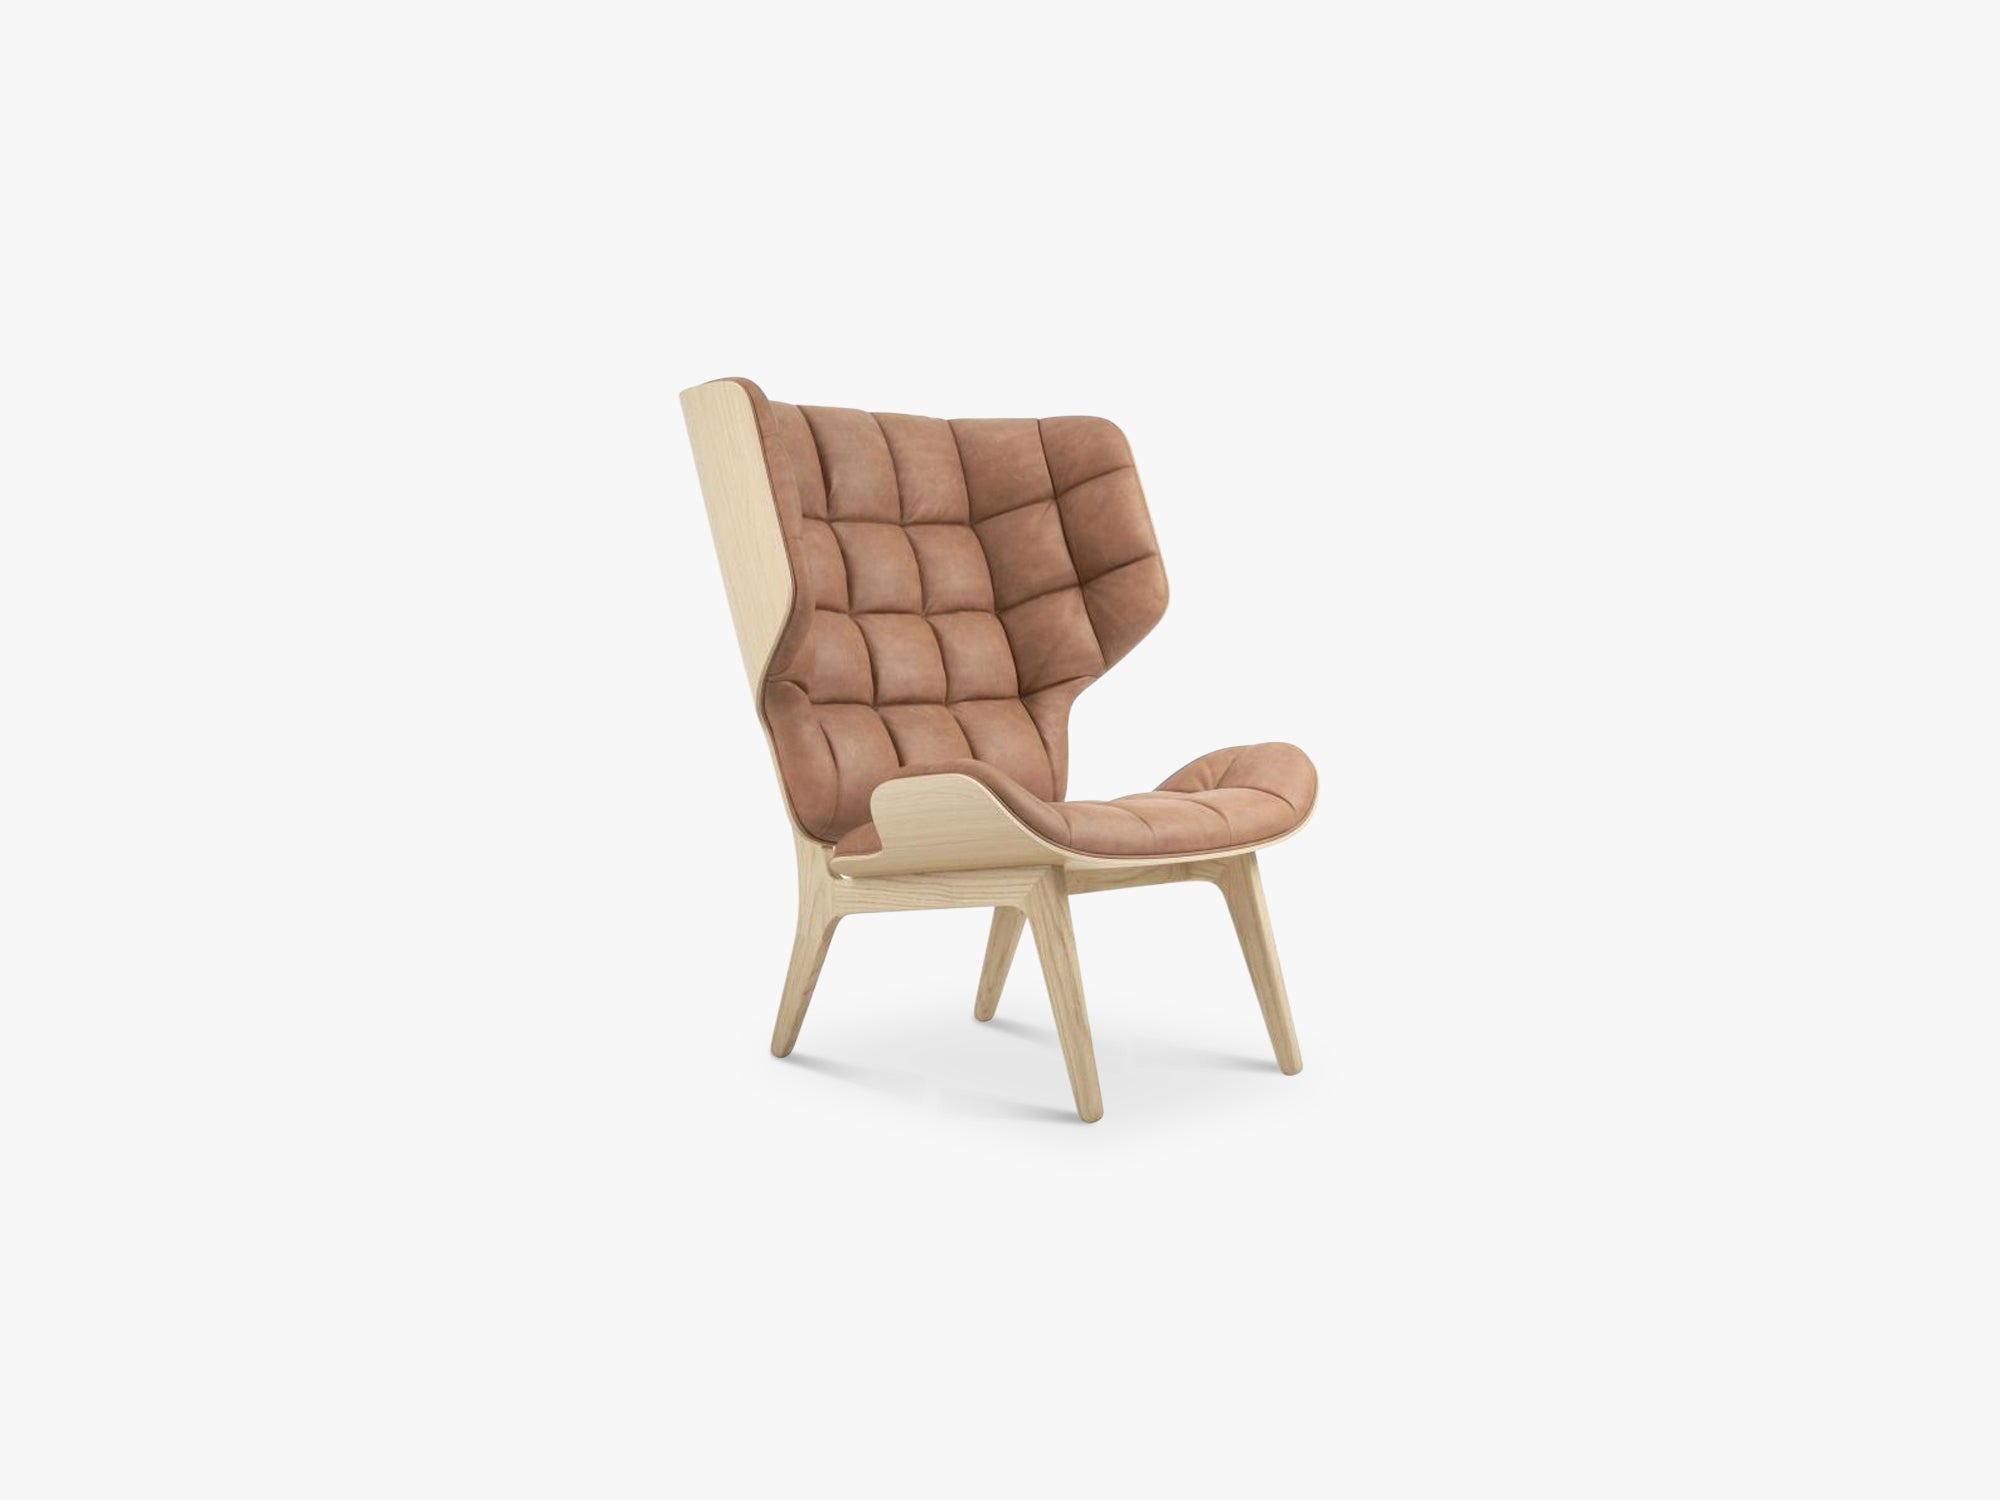 Mammoth Chair, Naturel/Camel fra NORR11